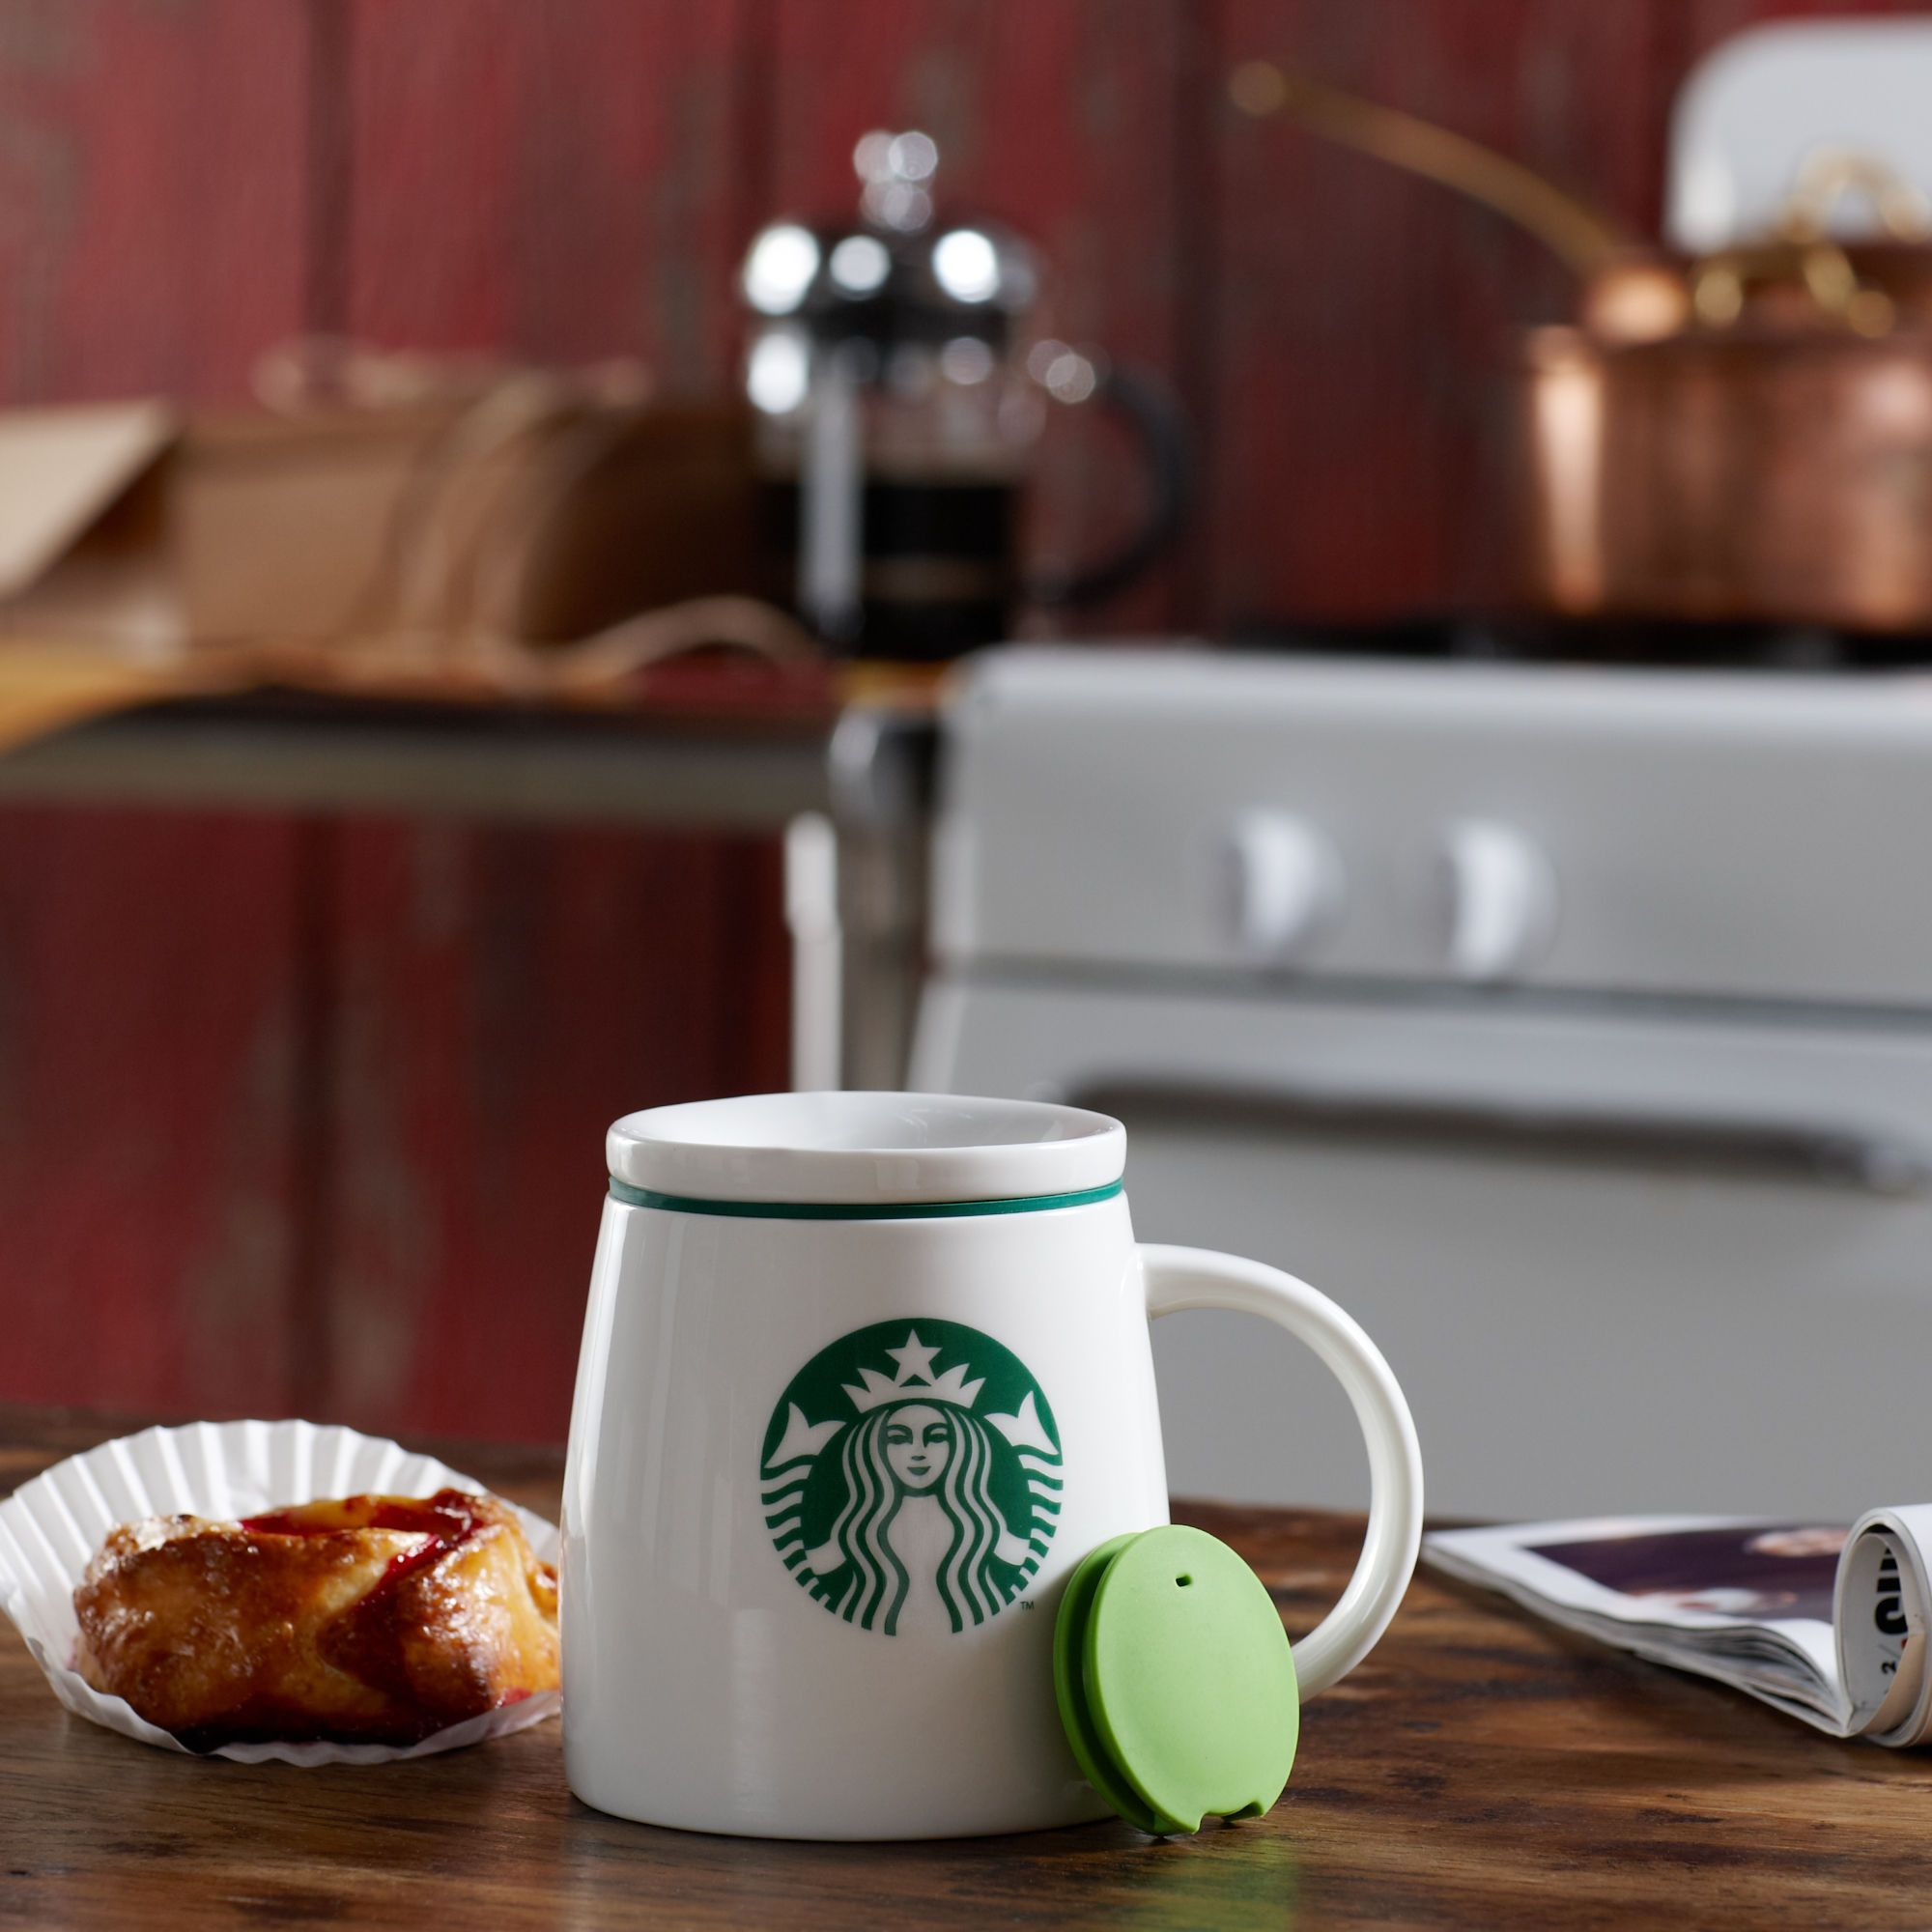 Starbucks® Ceramic Mug with Lid, 14 fl oz. To always keep